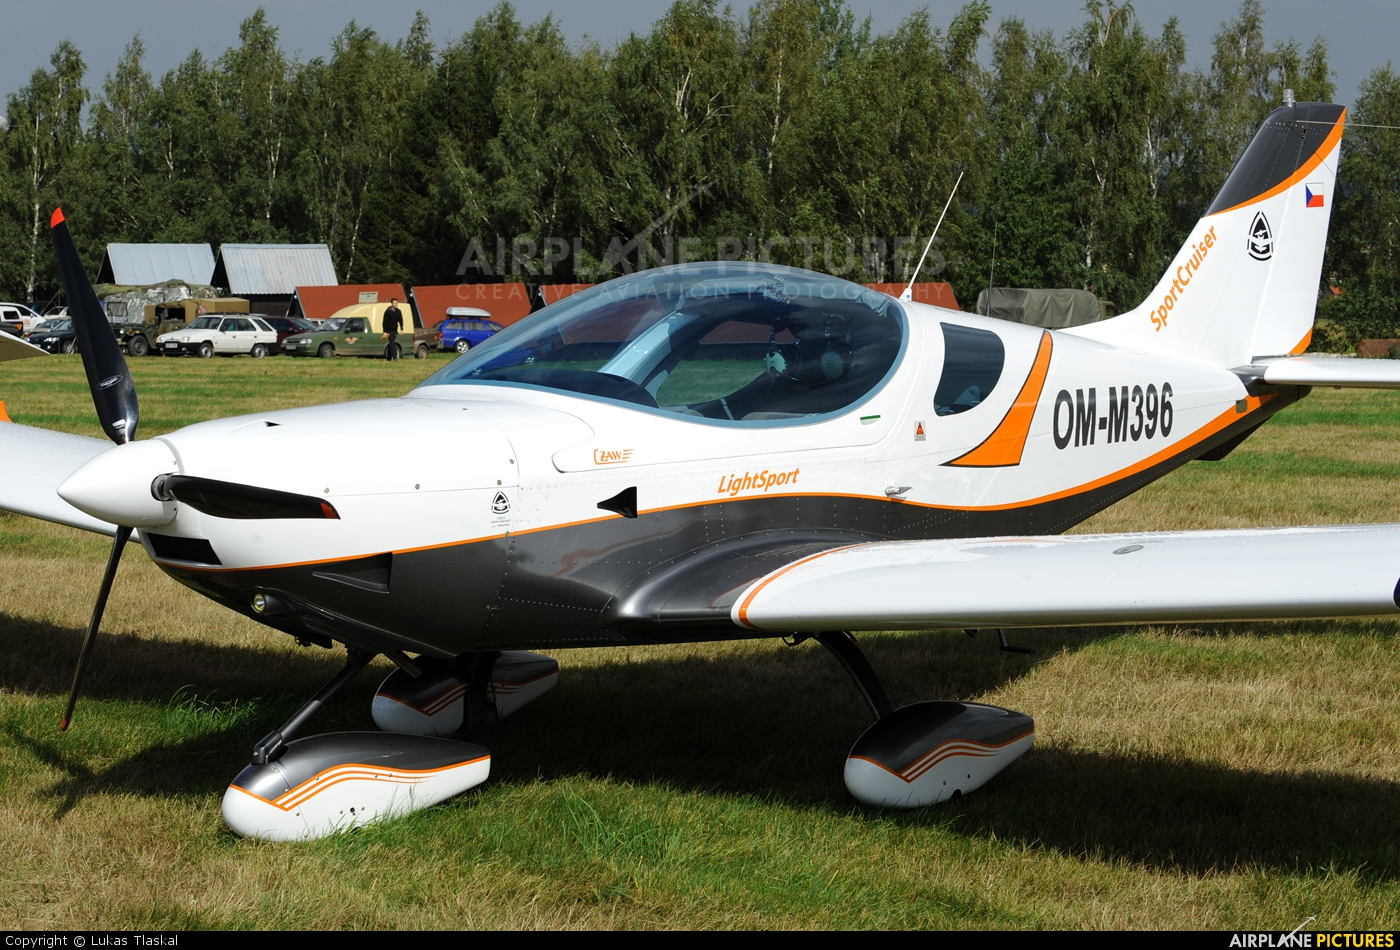 Private OM-M396 aircraft at Skuteč